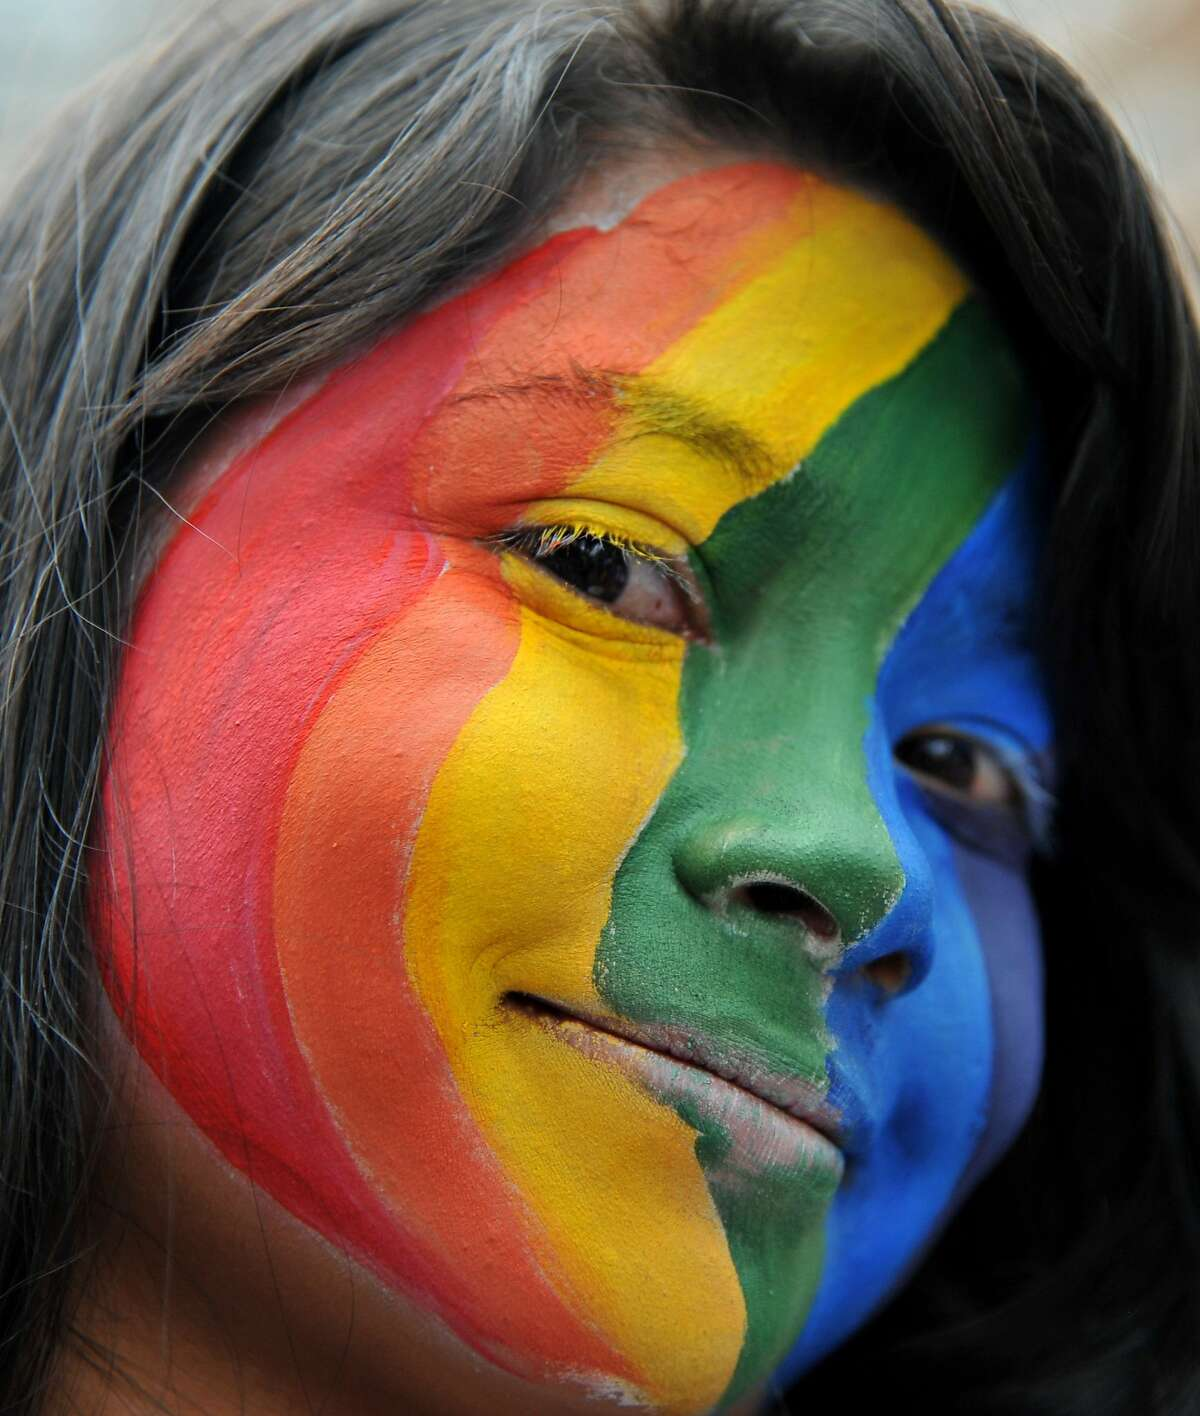 Bogota, Colombia A reveler takes part in the Gay Pride Parade in Bogota, Colombia on June 29, 2014. AFP PHOTO/Guillermo LEGARIAGUILLERMO LEGARIA/AFP/Getty Images